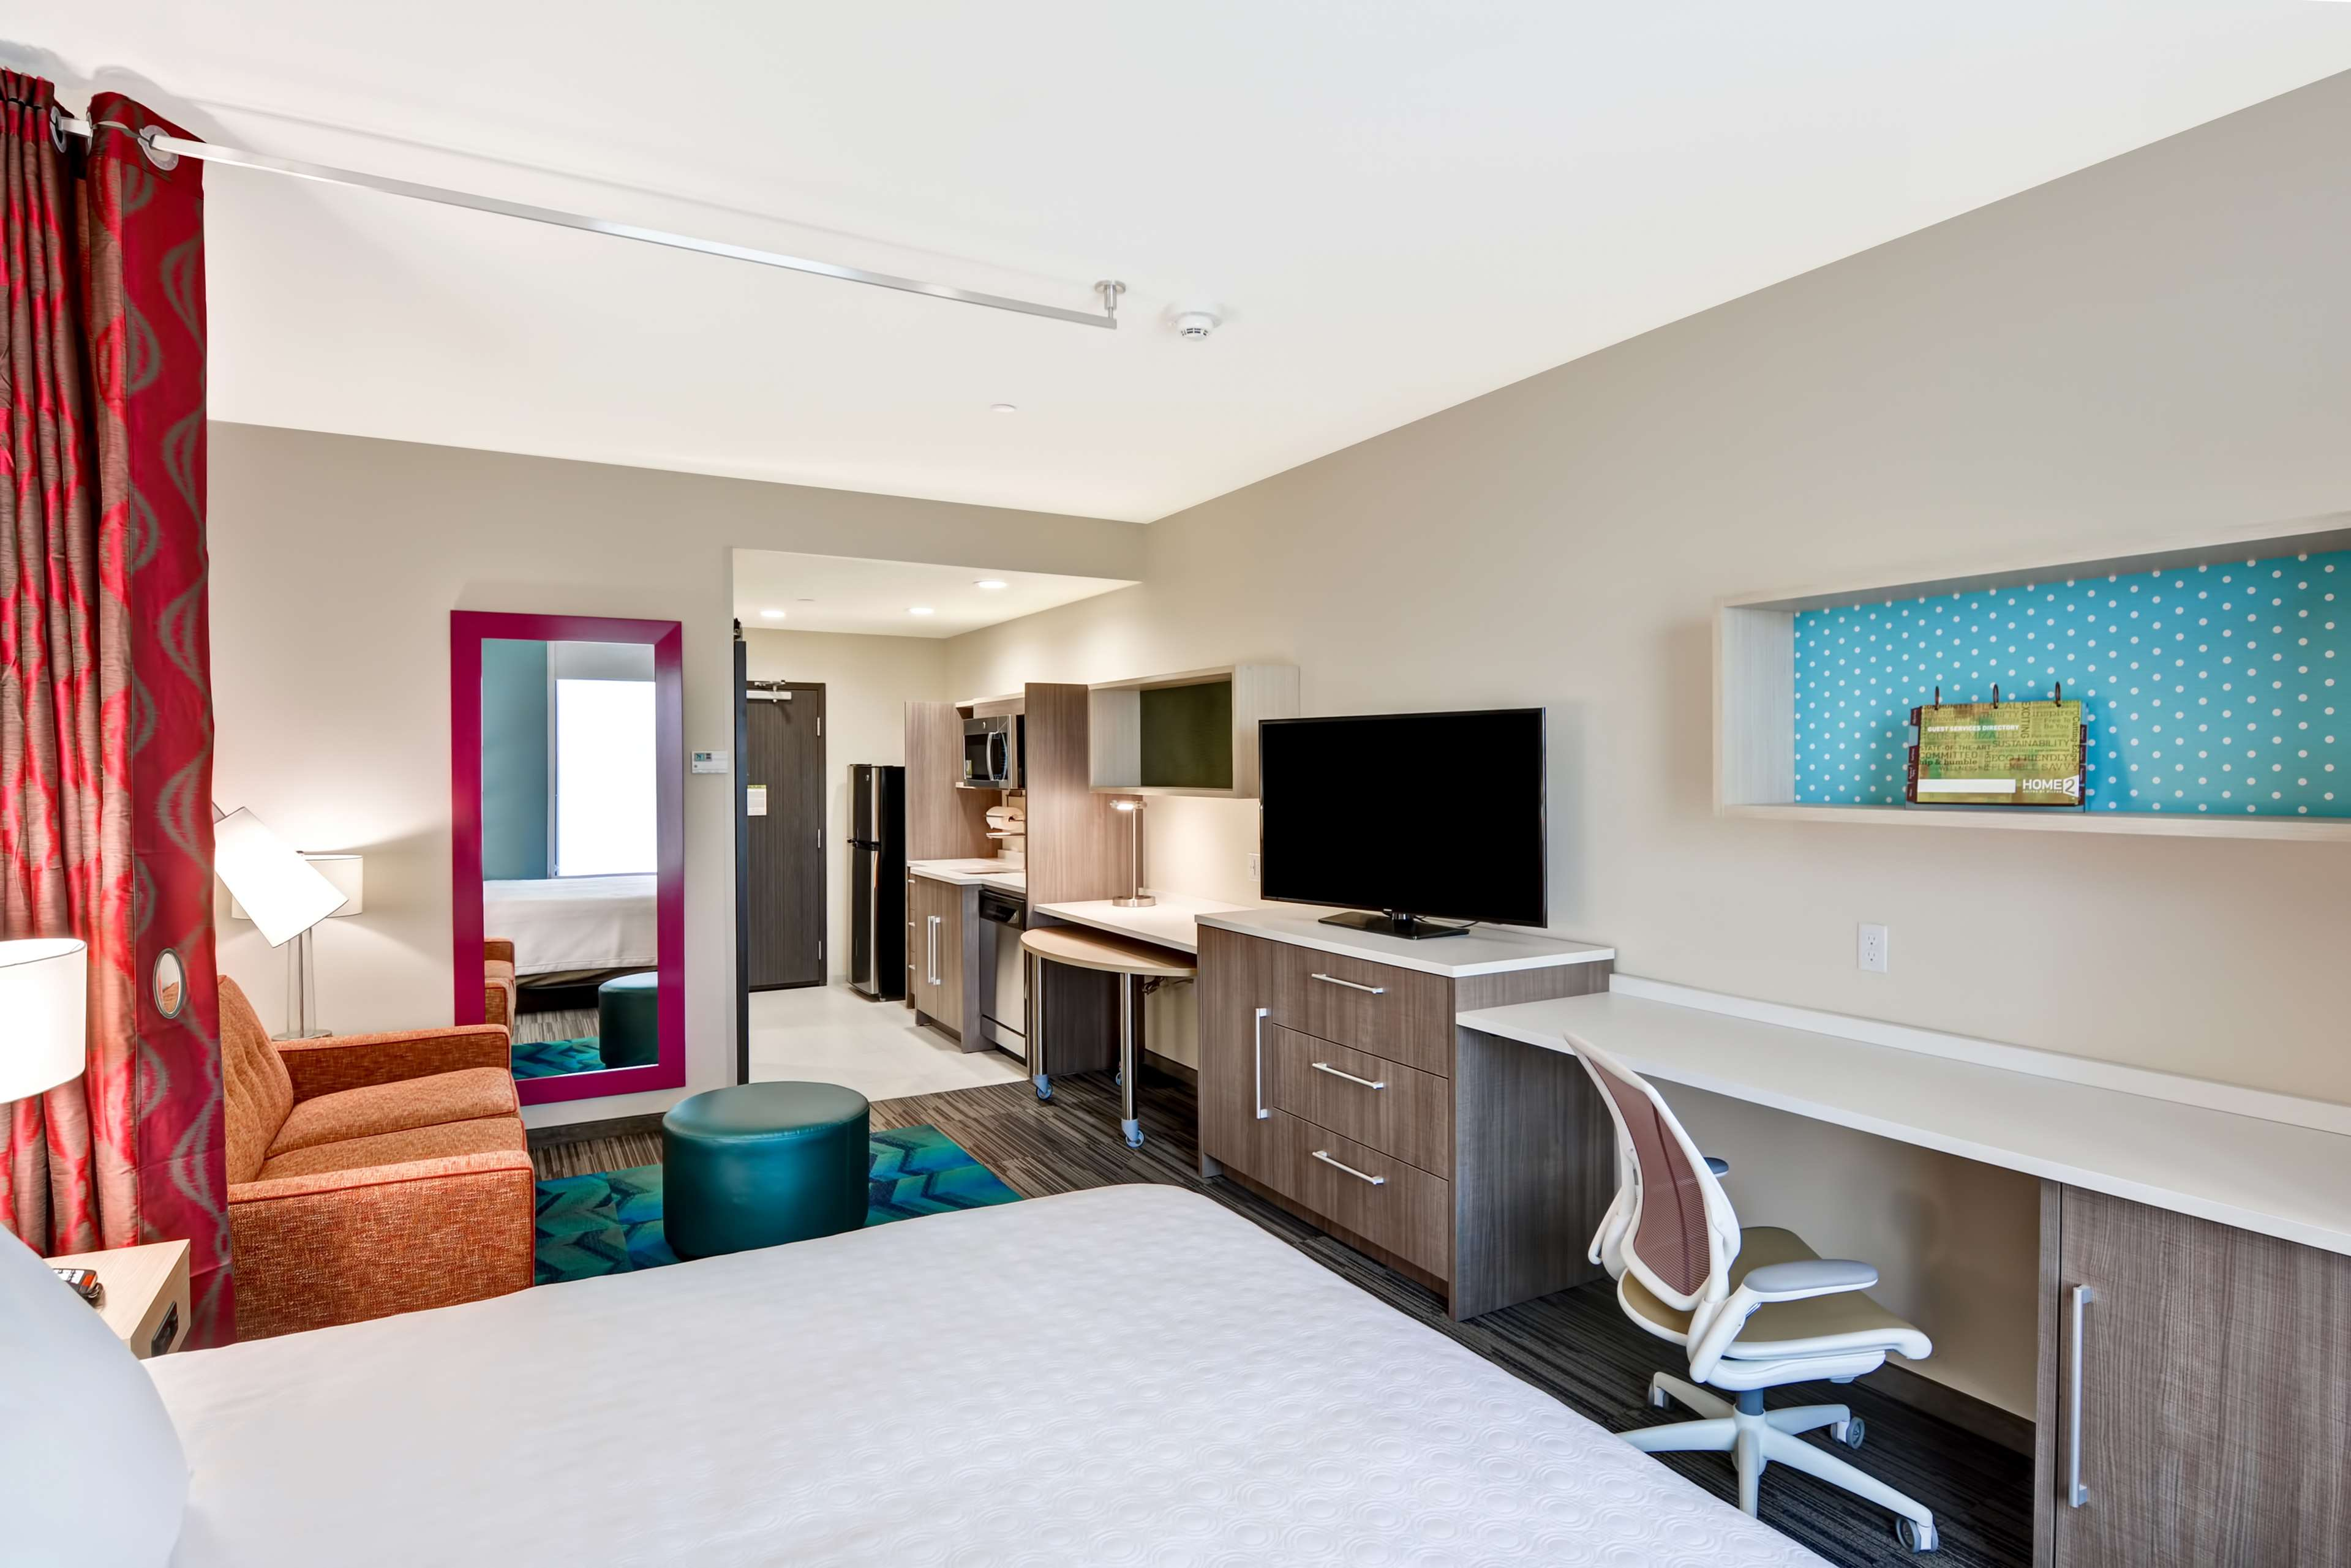 Home2 Suites by Hilton OKC Midwest City Tinker AFB image 20